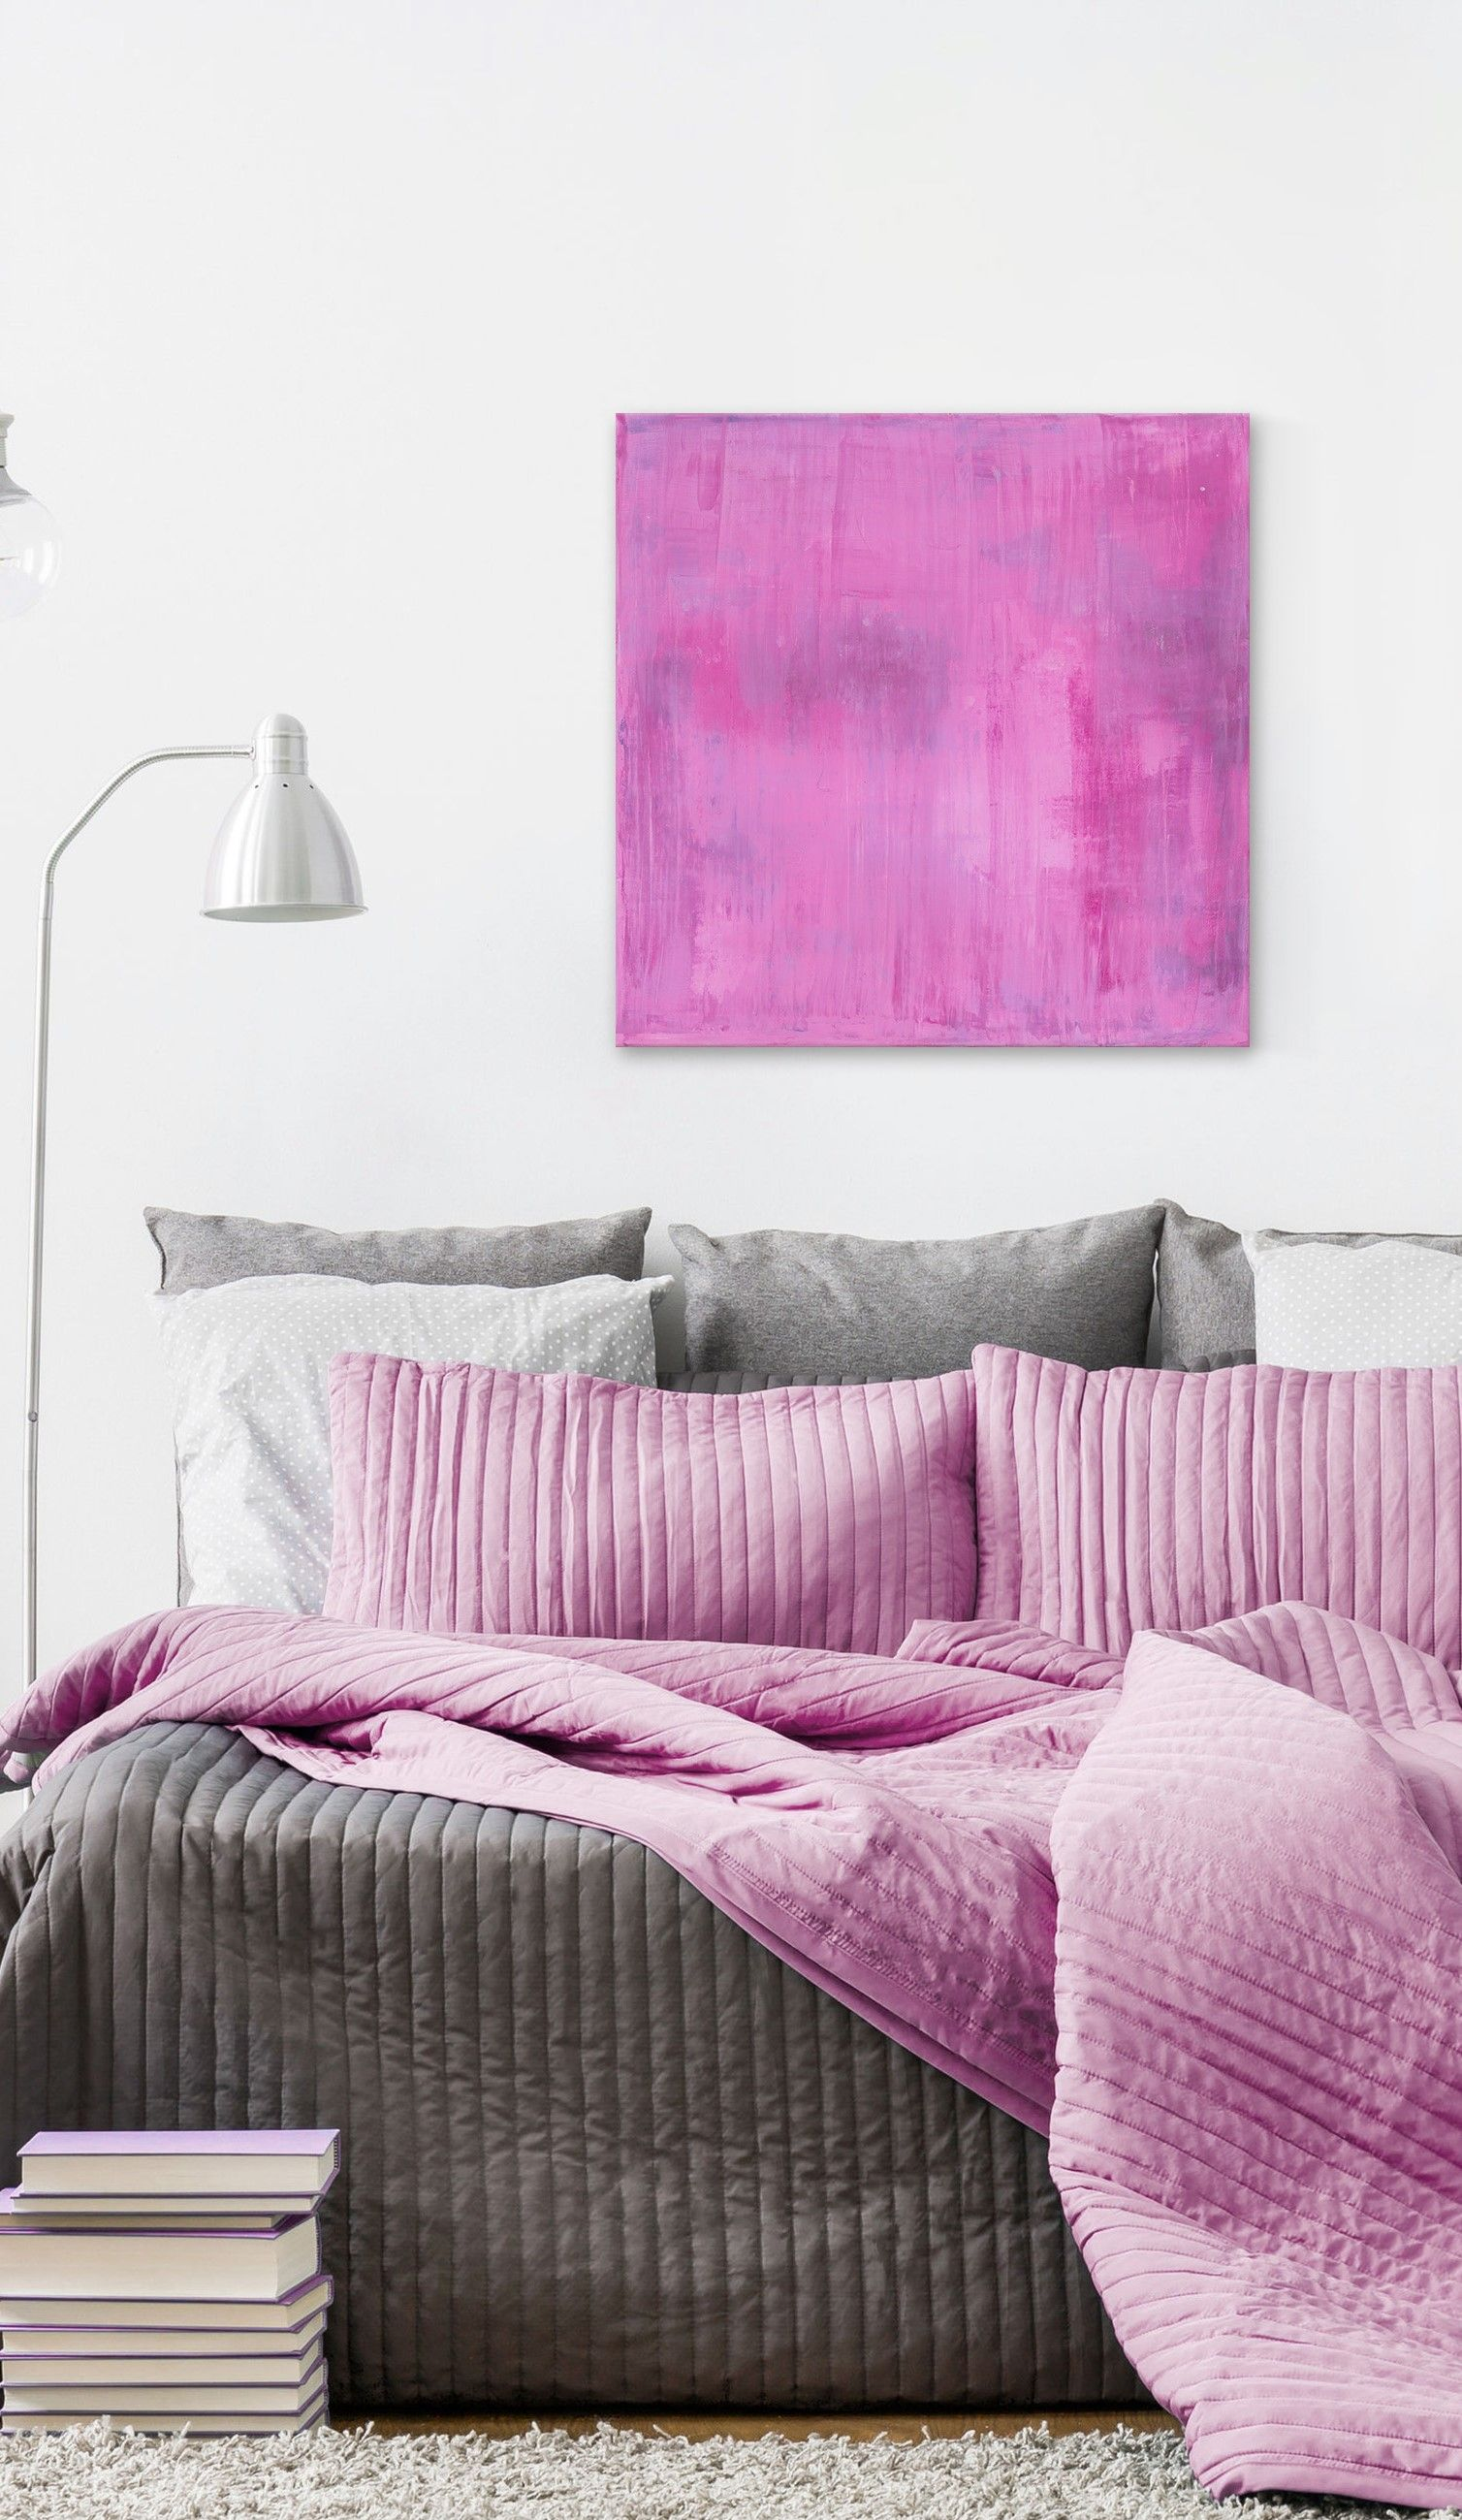 Pink Obsession Watercolour Painting Print On Wrapped Canvas Master Bedroom Colors Small Room Bedroom Master Bedrooms Decor